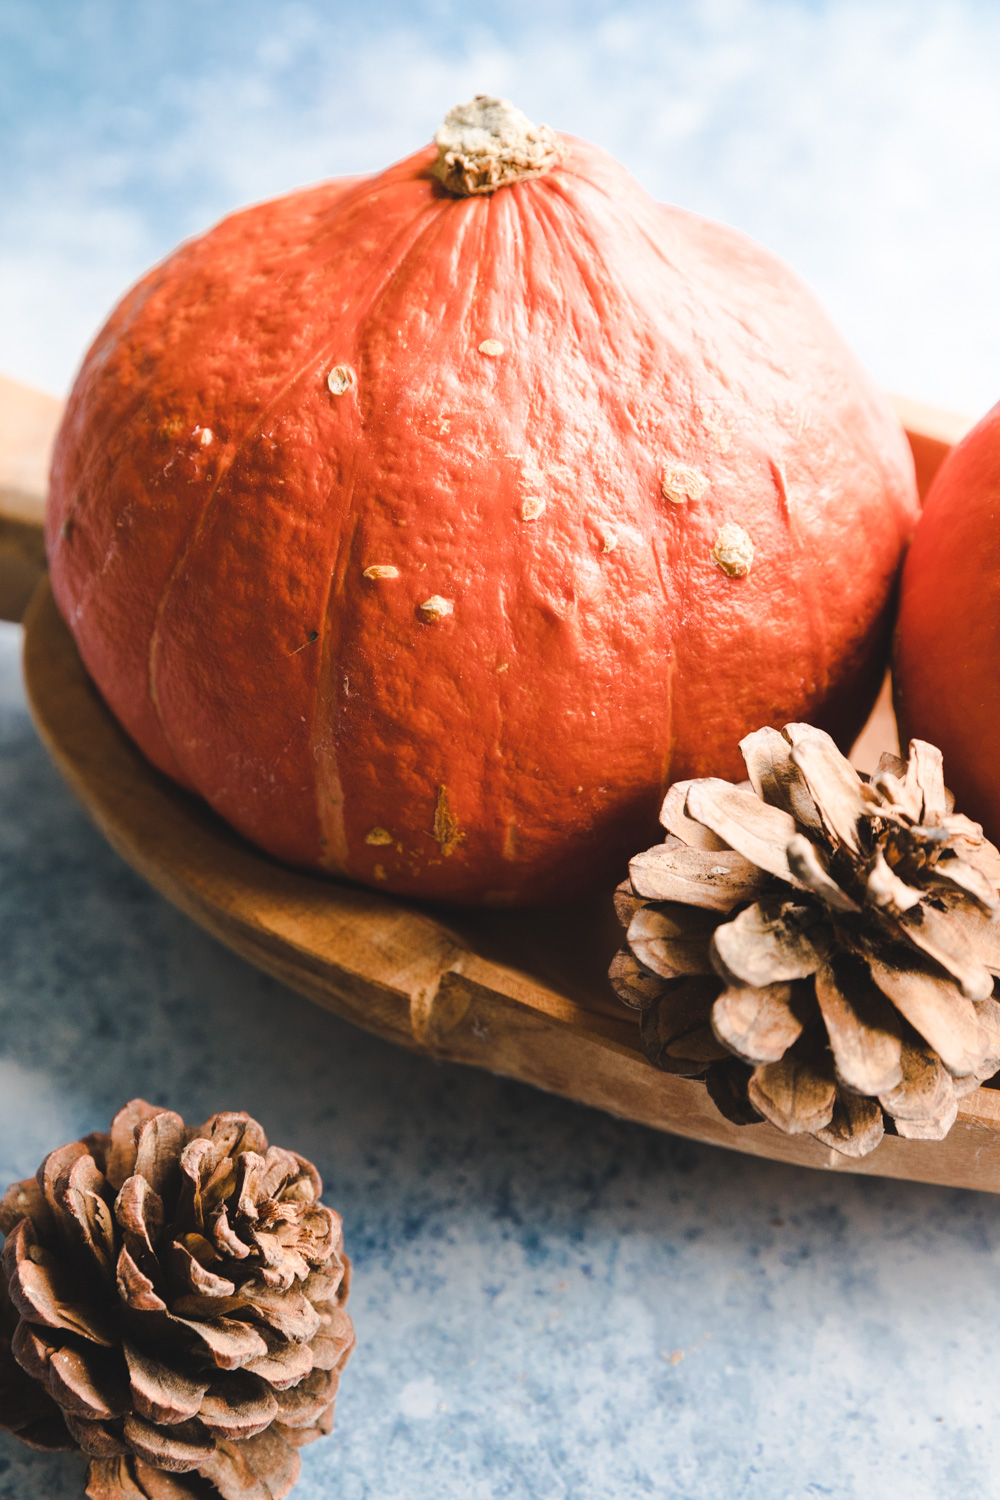 Two pumpkins in a wooden bowl on a blue backdrop next to two pine apples